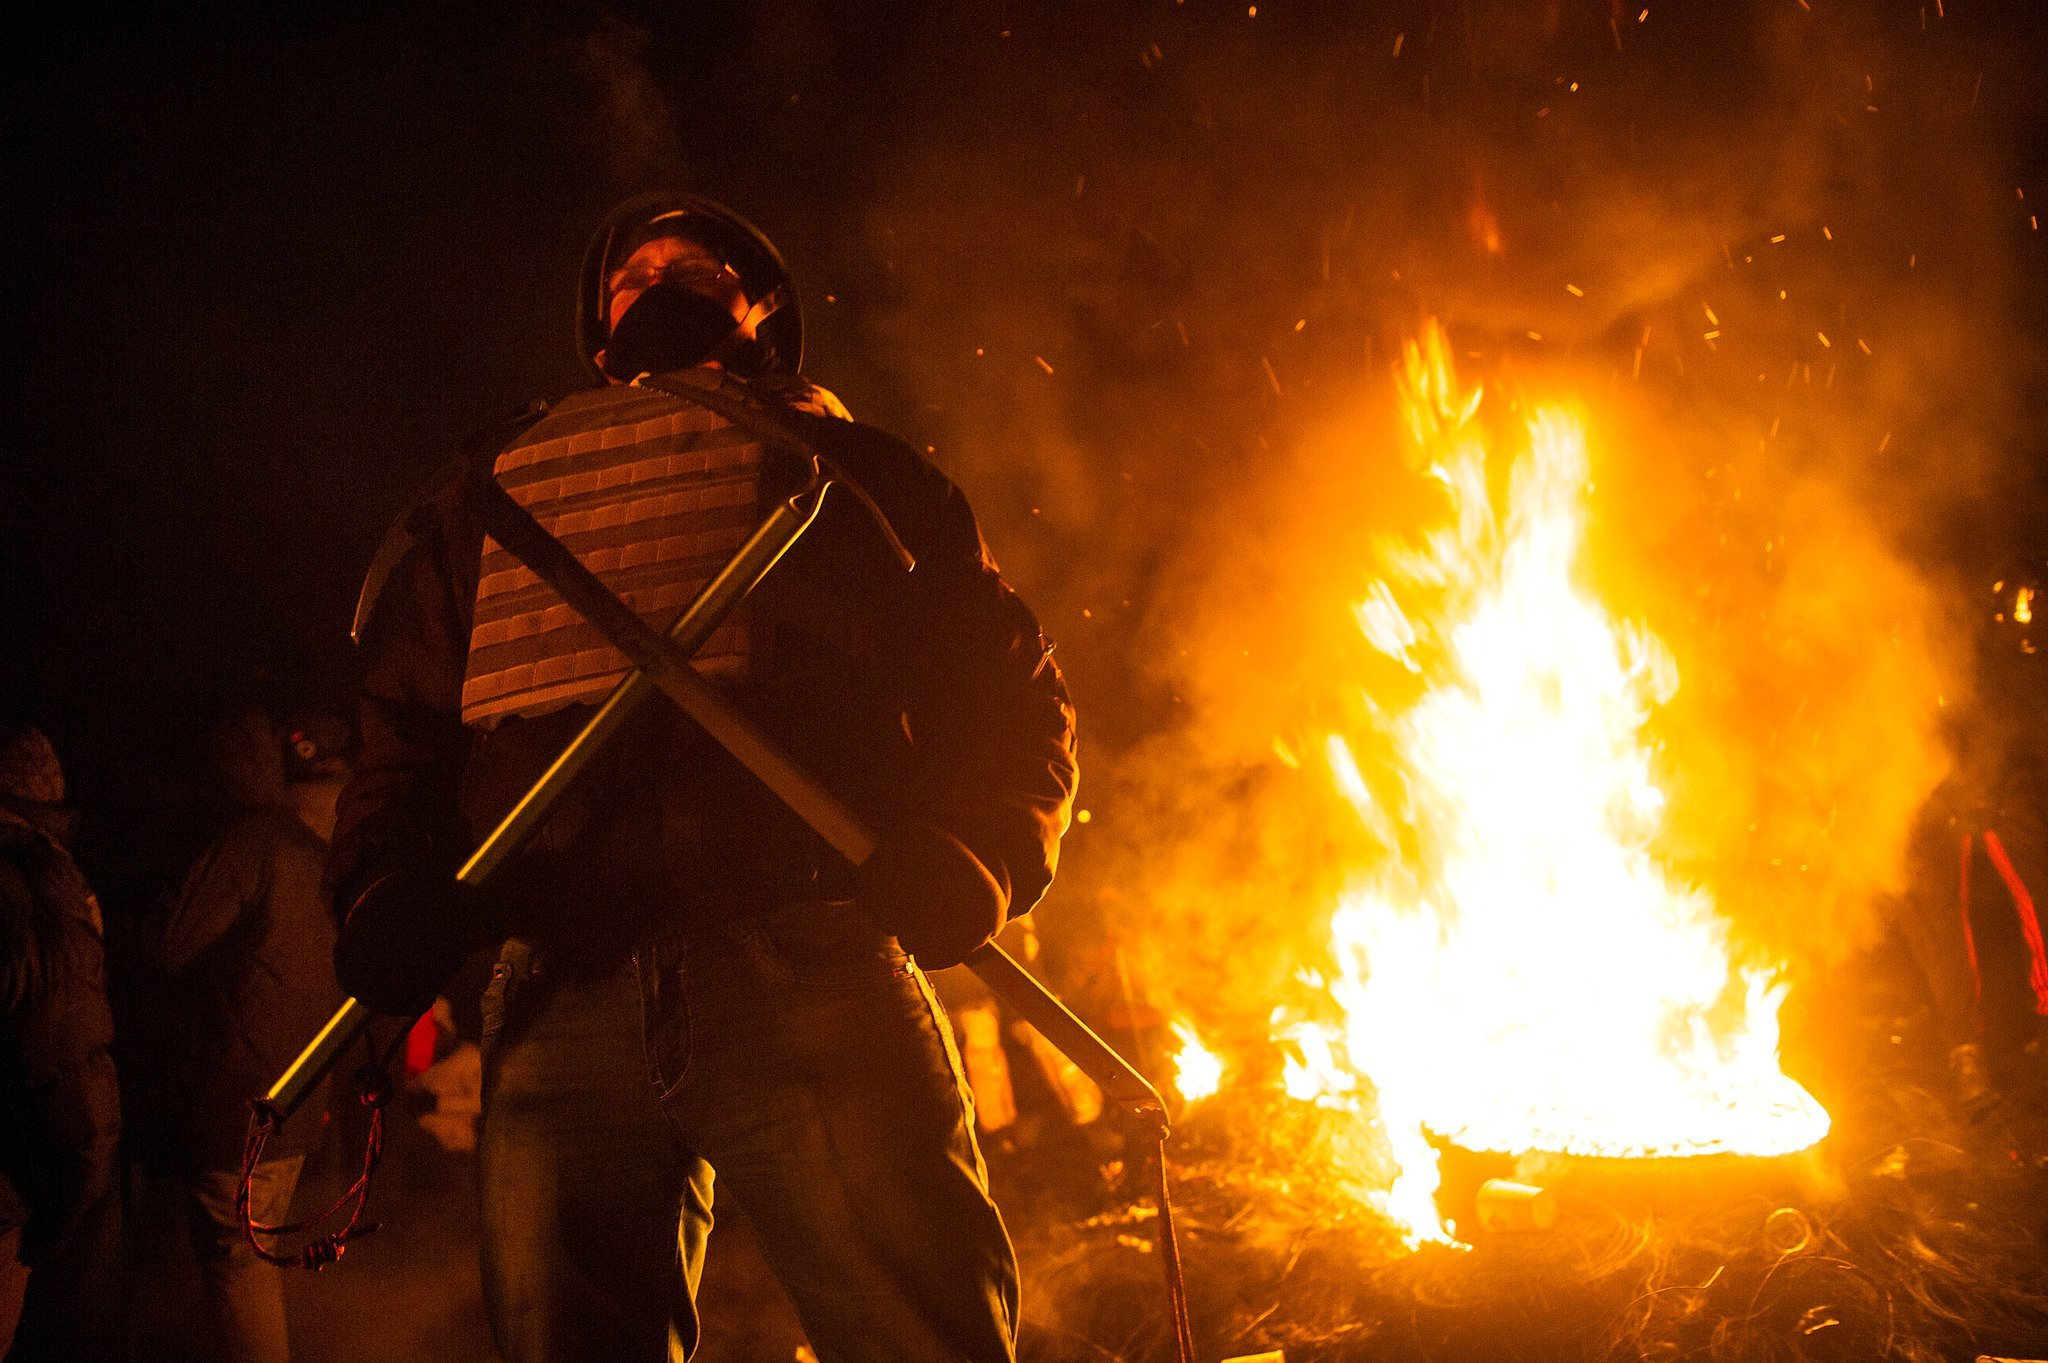 They burned tires beside their barricade in Kiev.